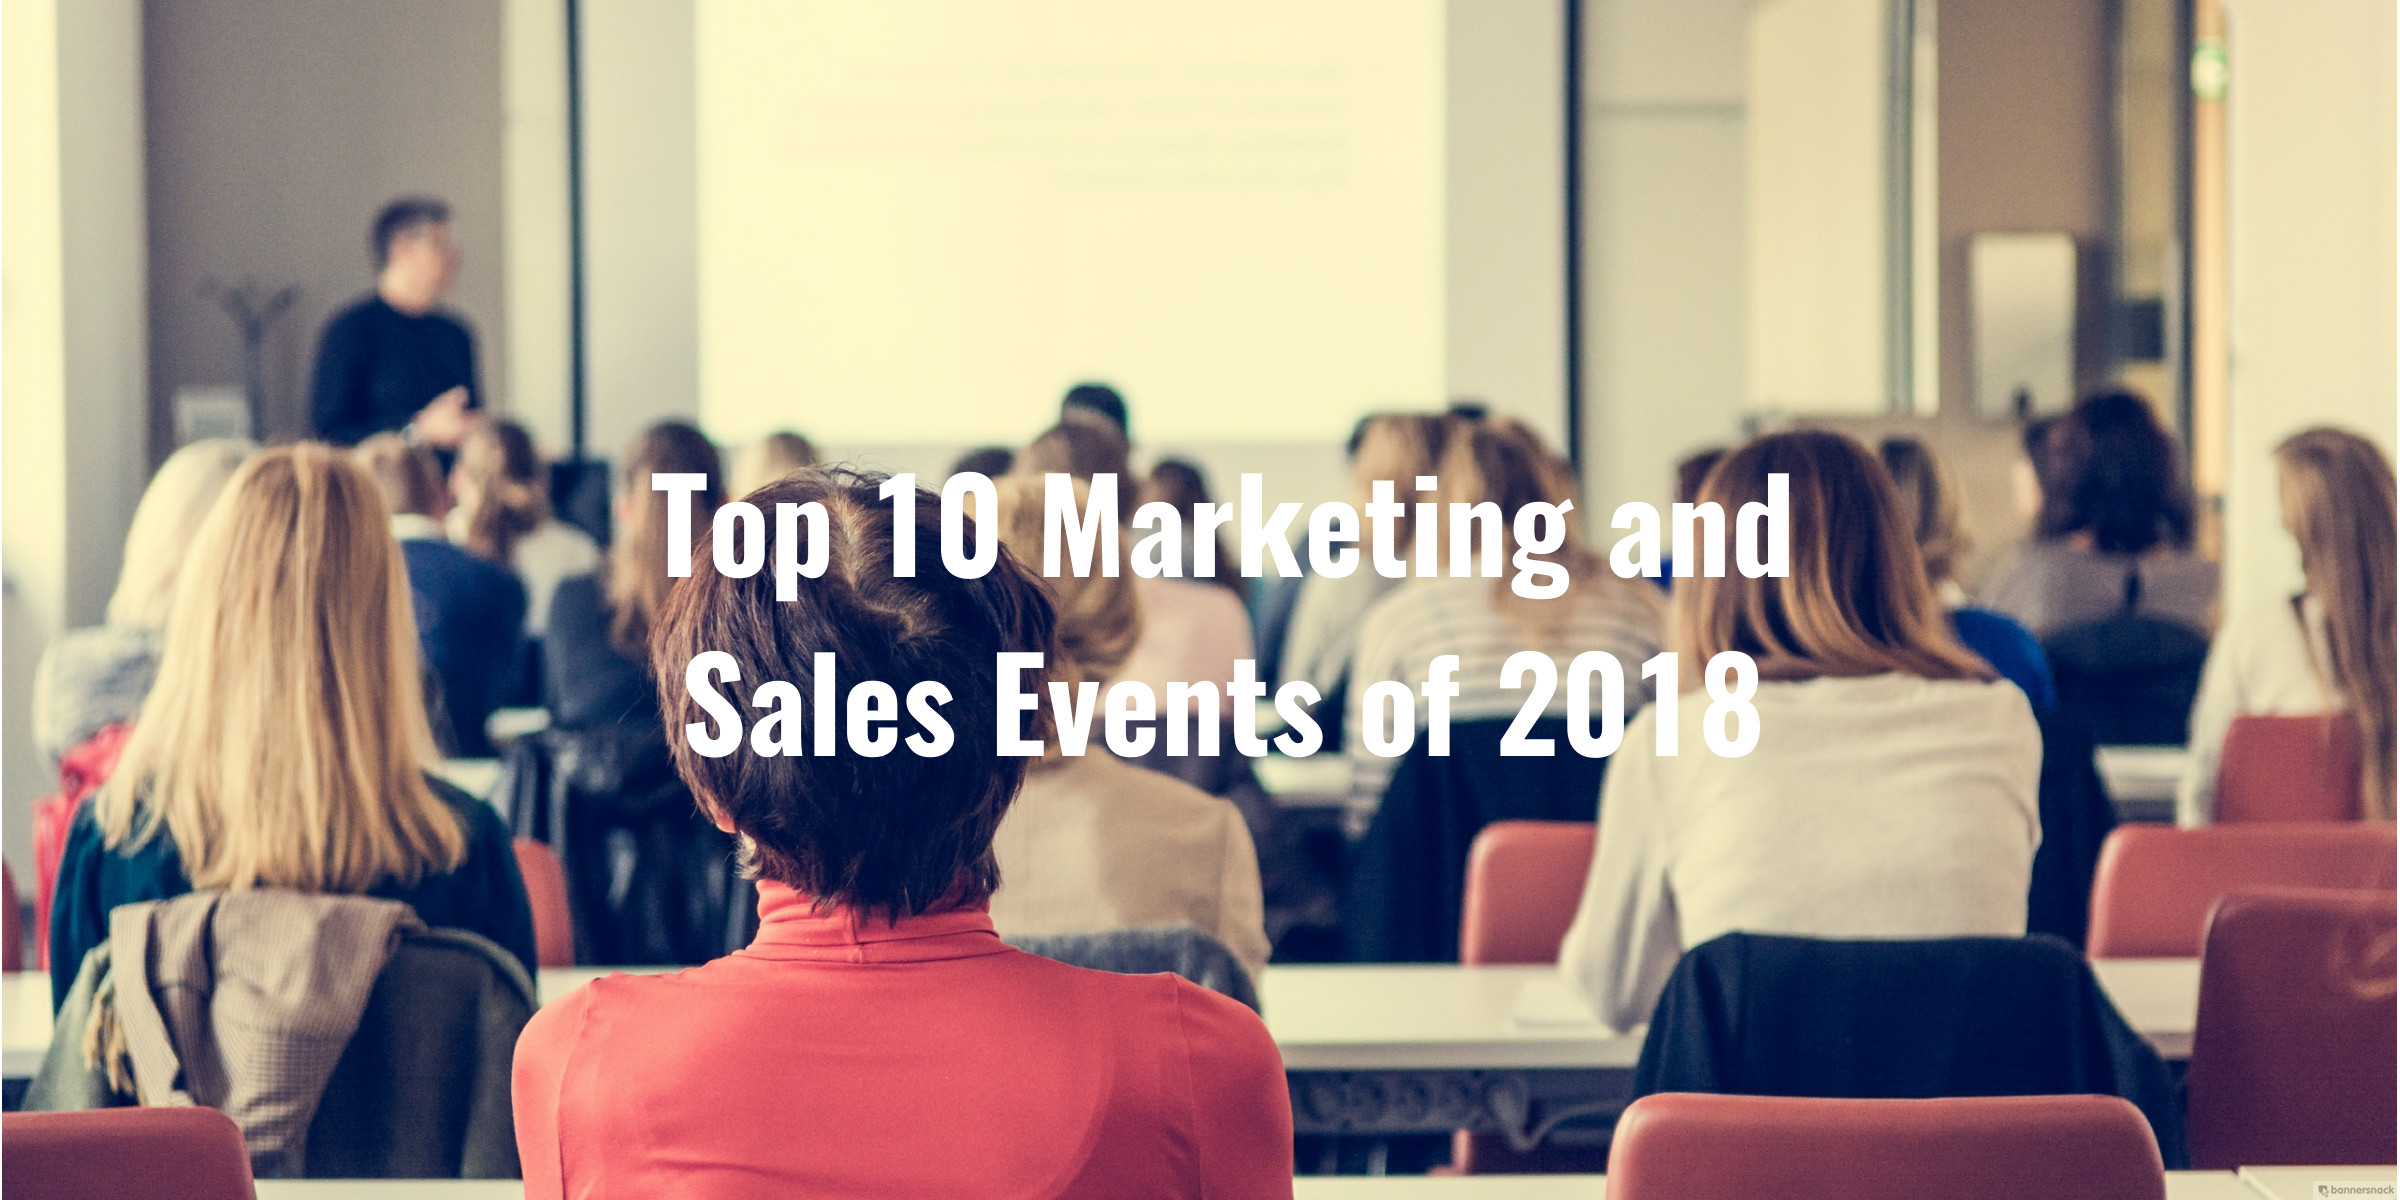 Top 10 B2B Marketing and Sales Events of 2018